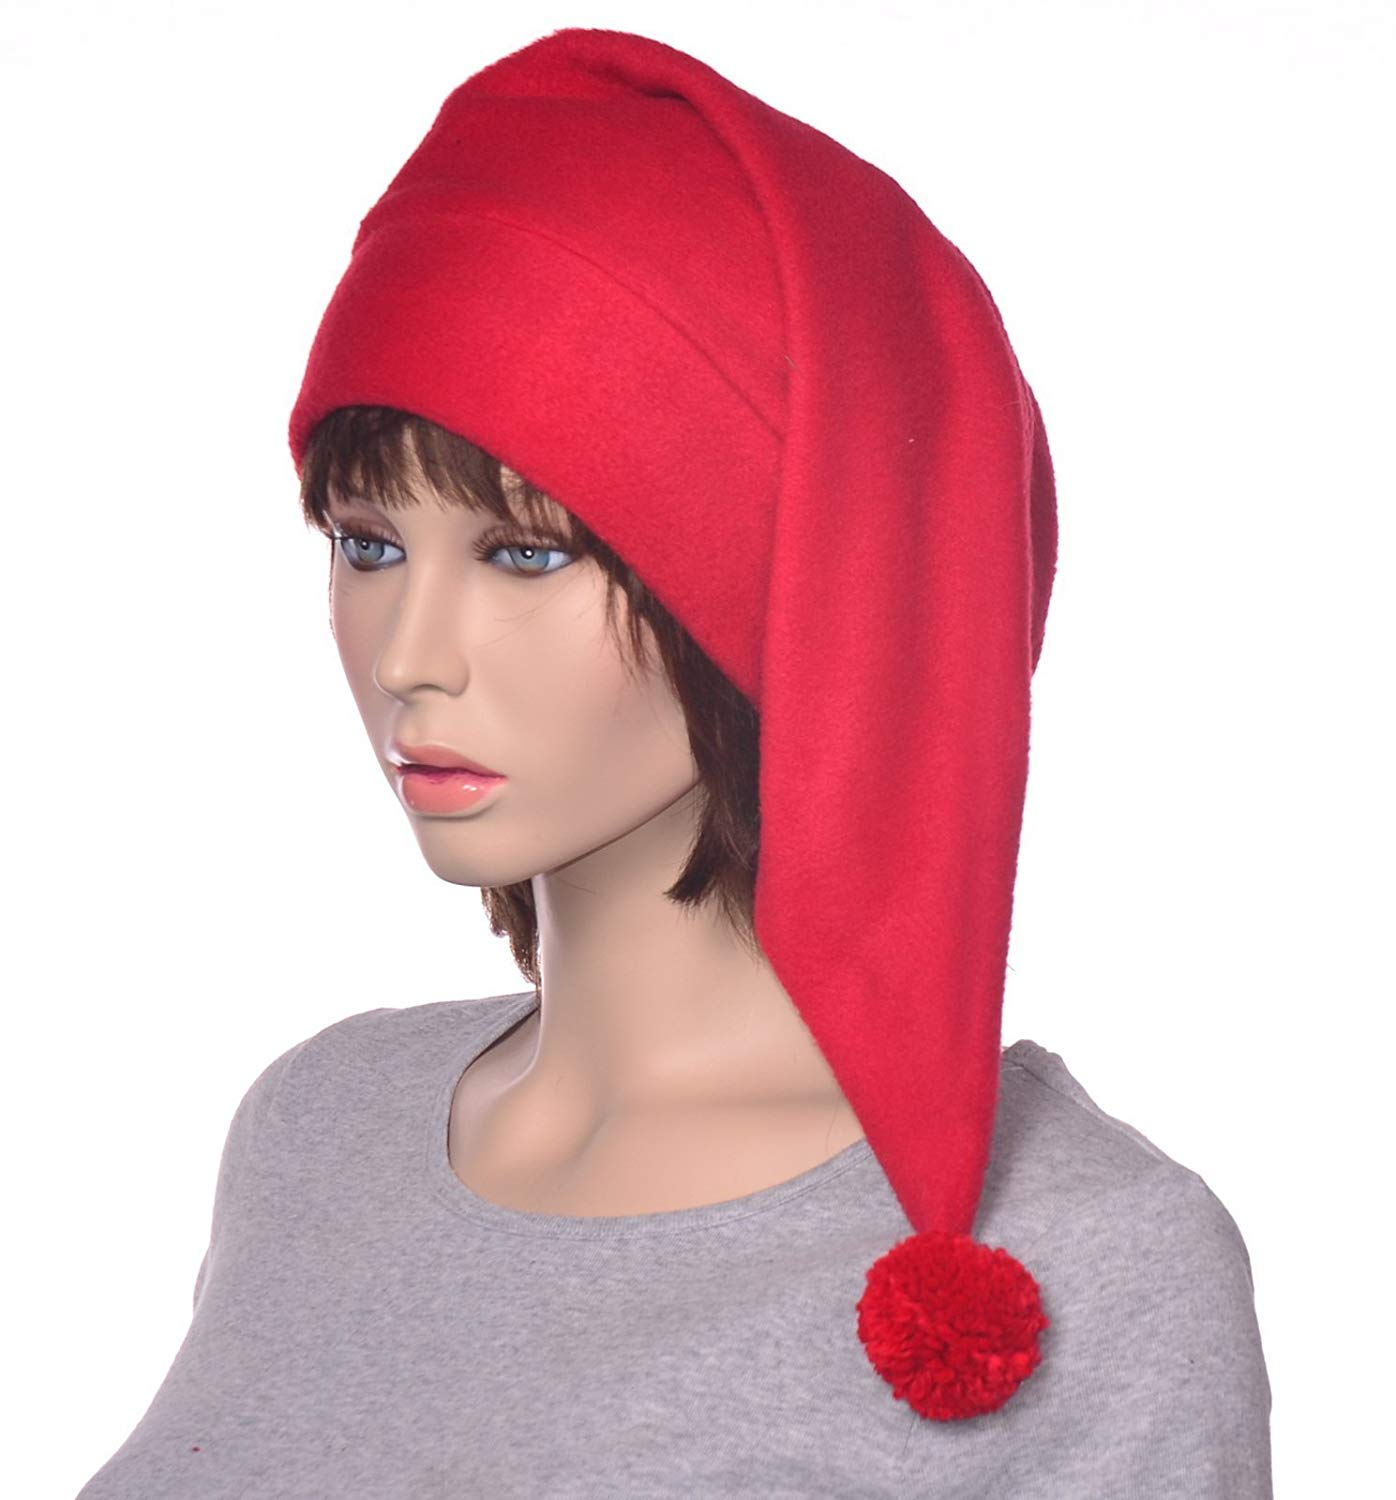 b420e26970262 Get Quotations · Long Red Pointed Stocking Cap with Pompom Made of Fleece